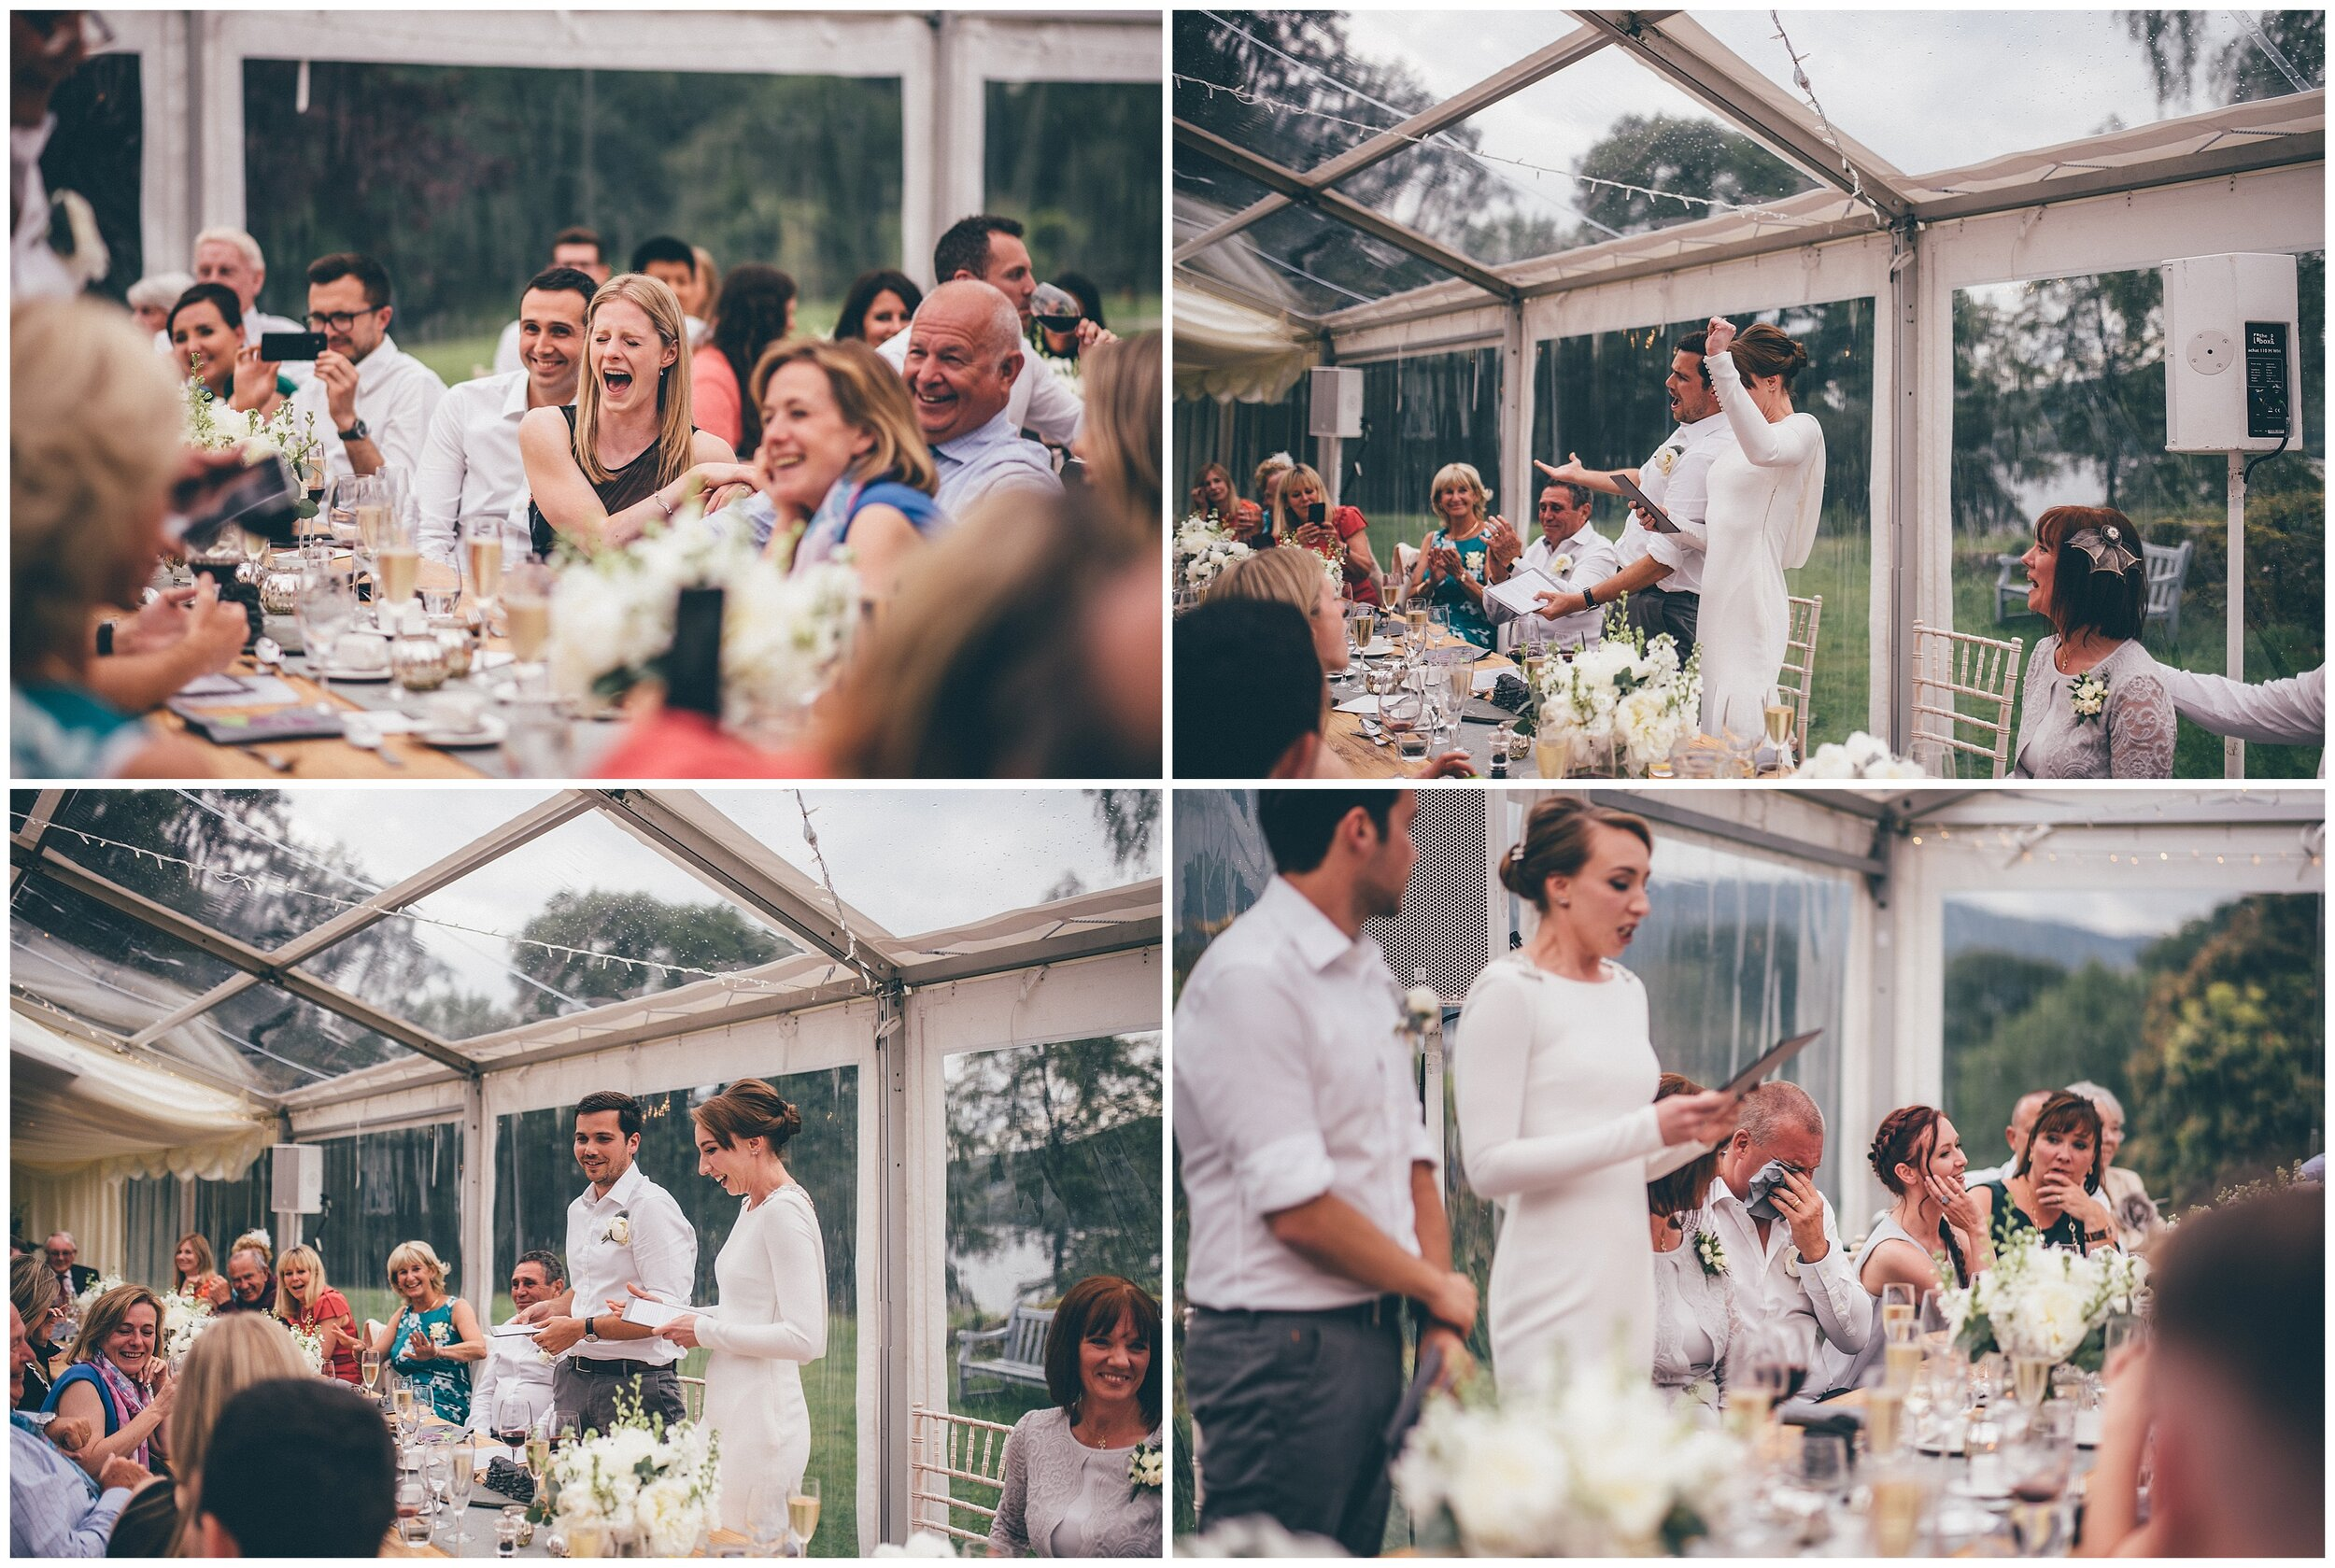 Wedding speeches at Silverholme Manor, Graythwaite Estate.